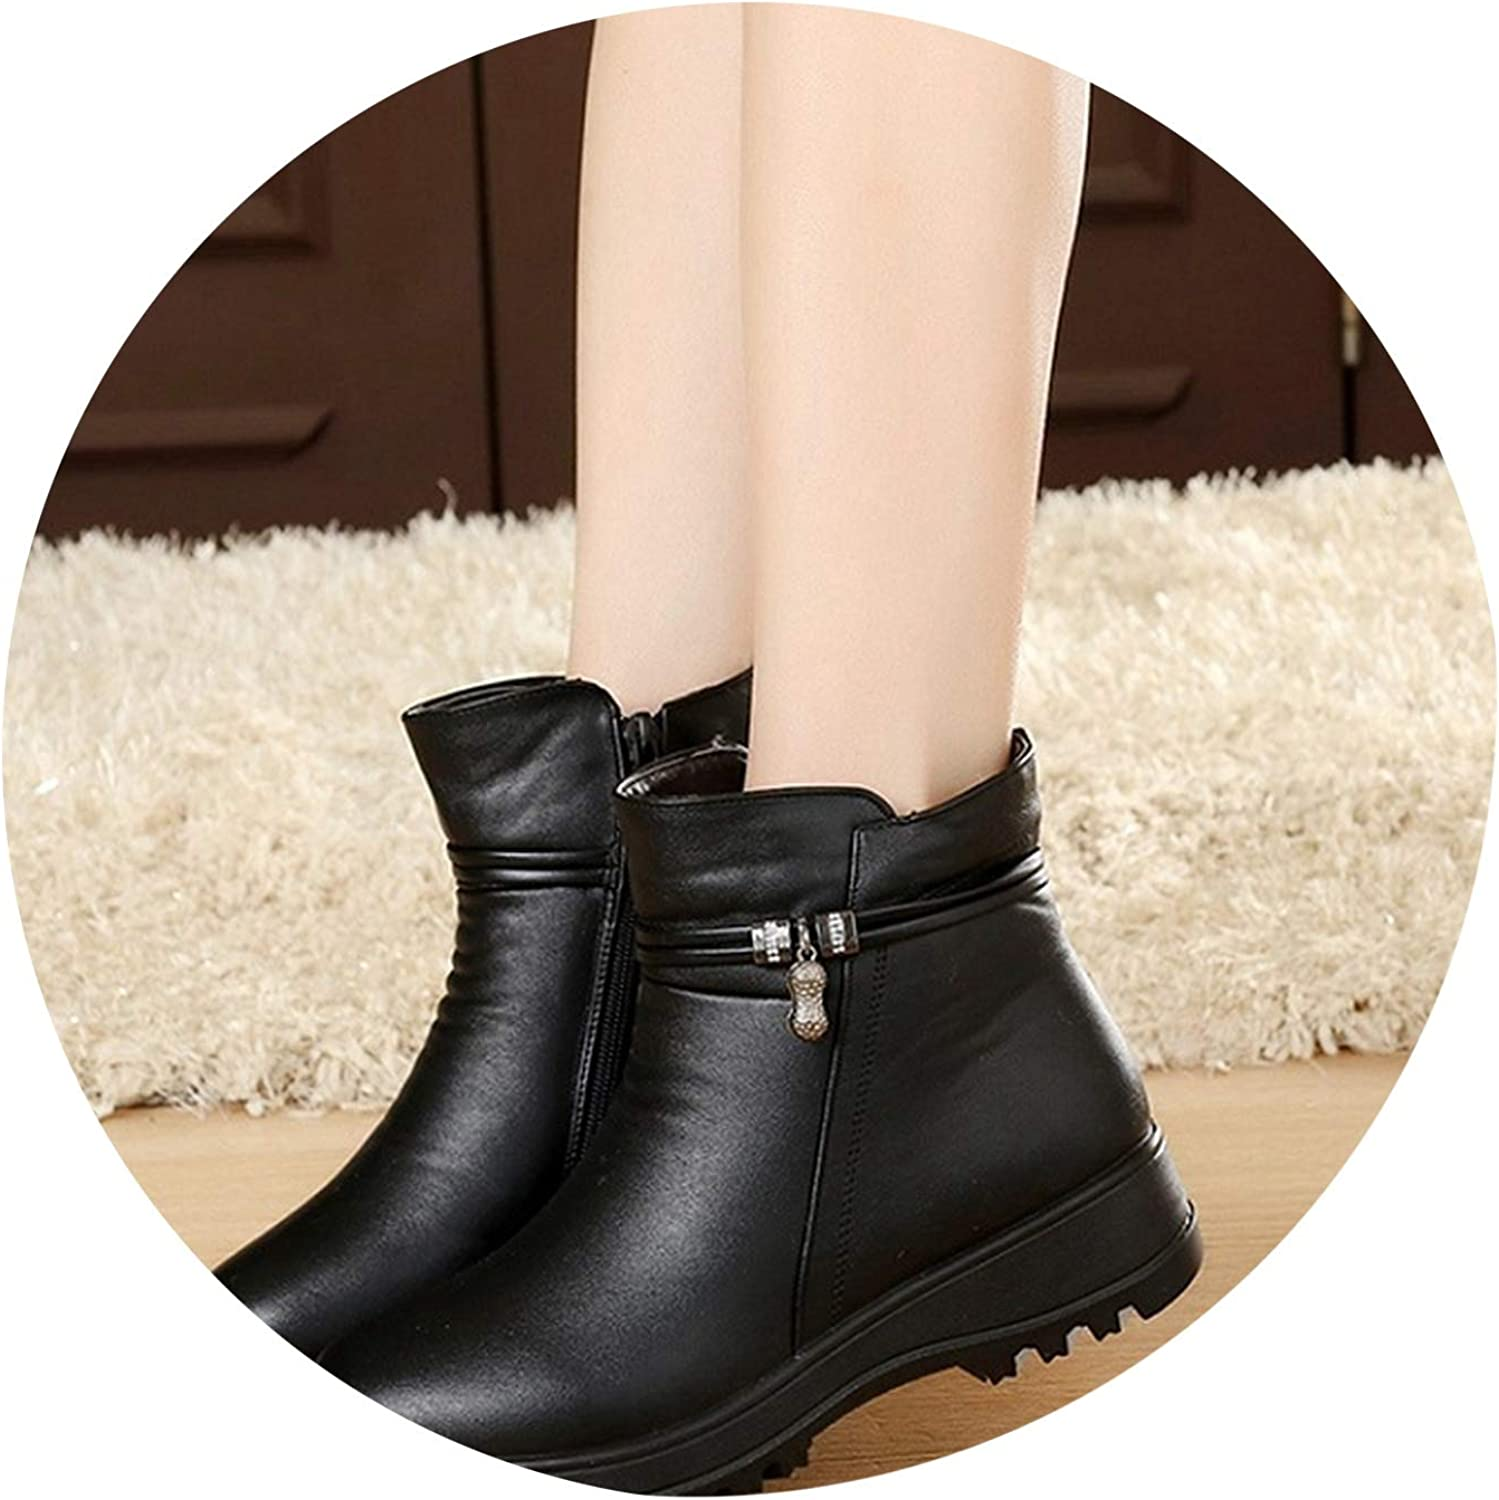 Winter shoes Women's Genuine Leather Ankle Flat Boots Casual Warm Woman Snow Boots